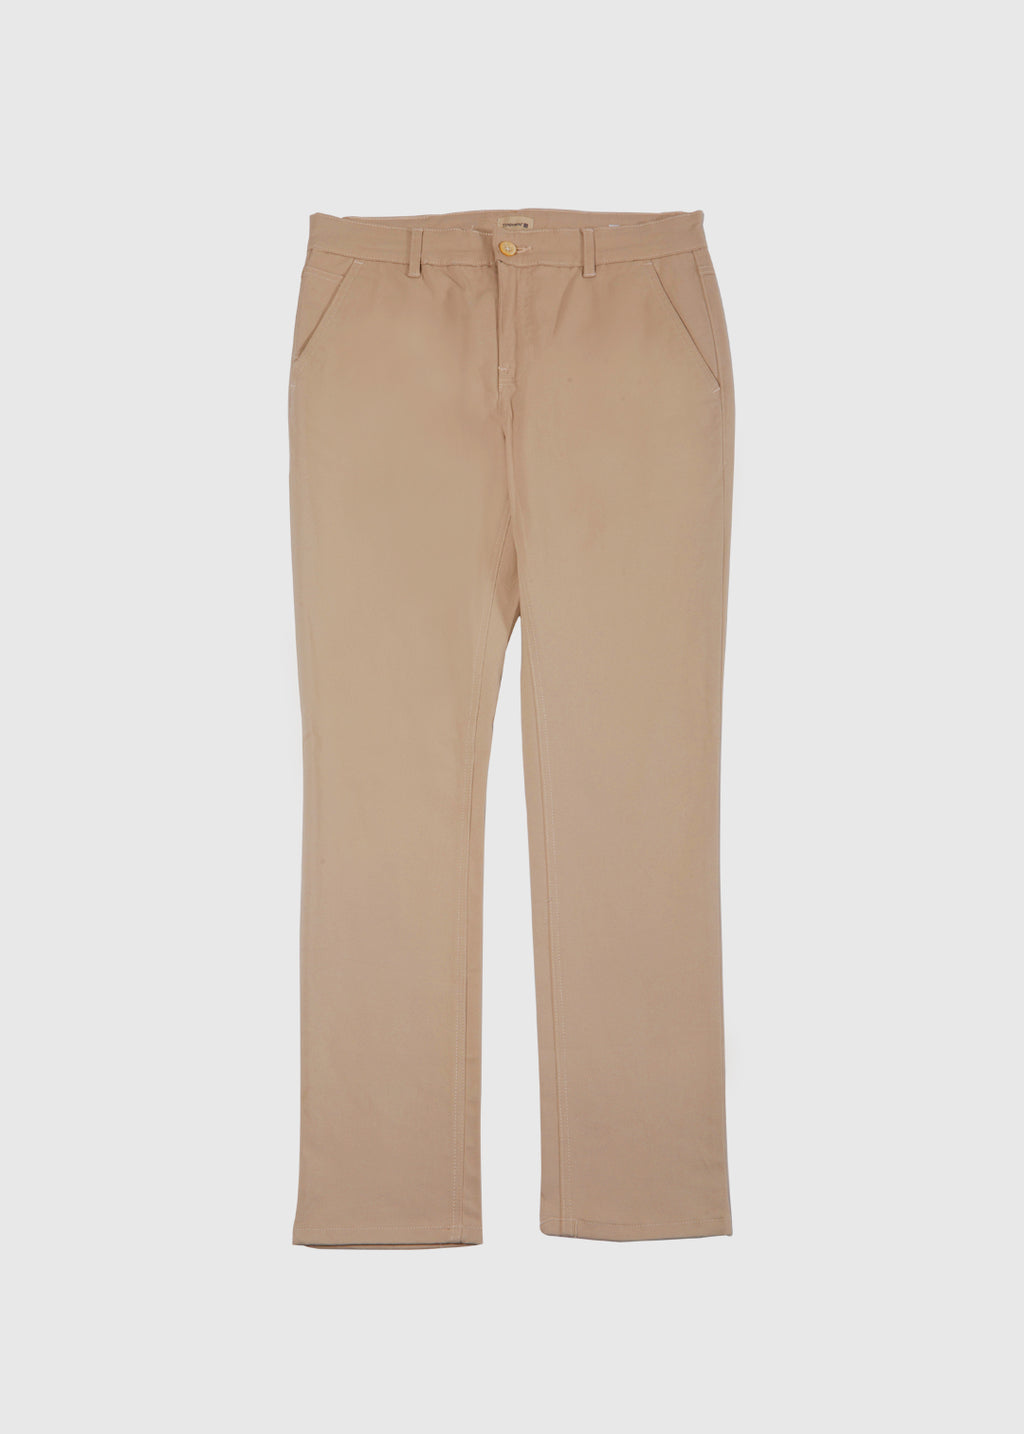 CHINO PANTS FIT 220 KHAKI SS20